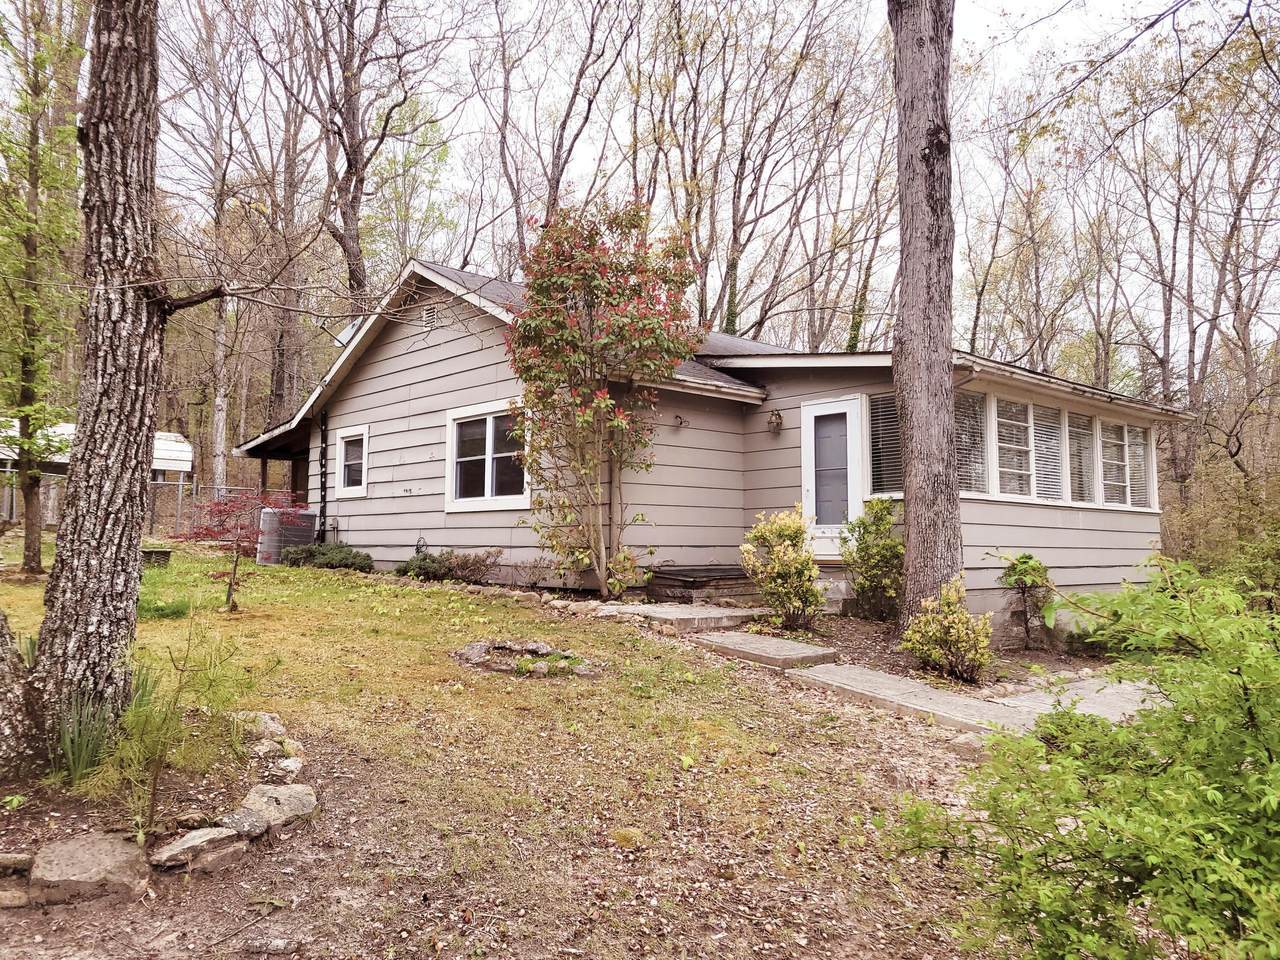 6902 Peterson Rd - Photo 1